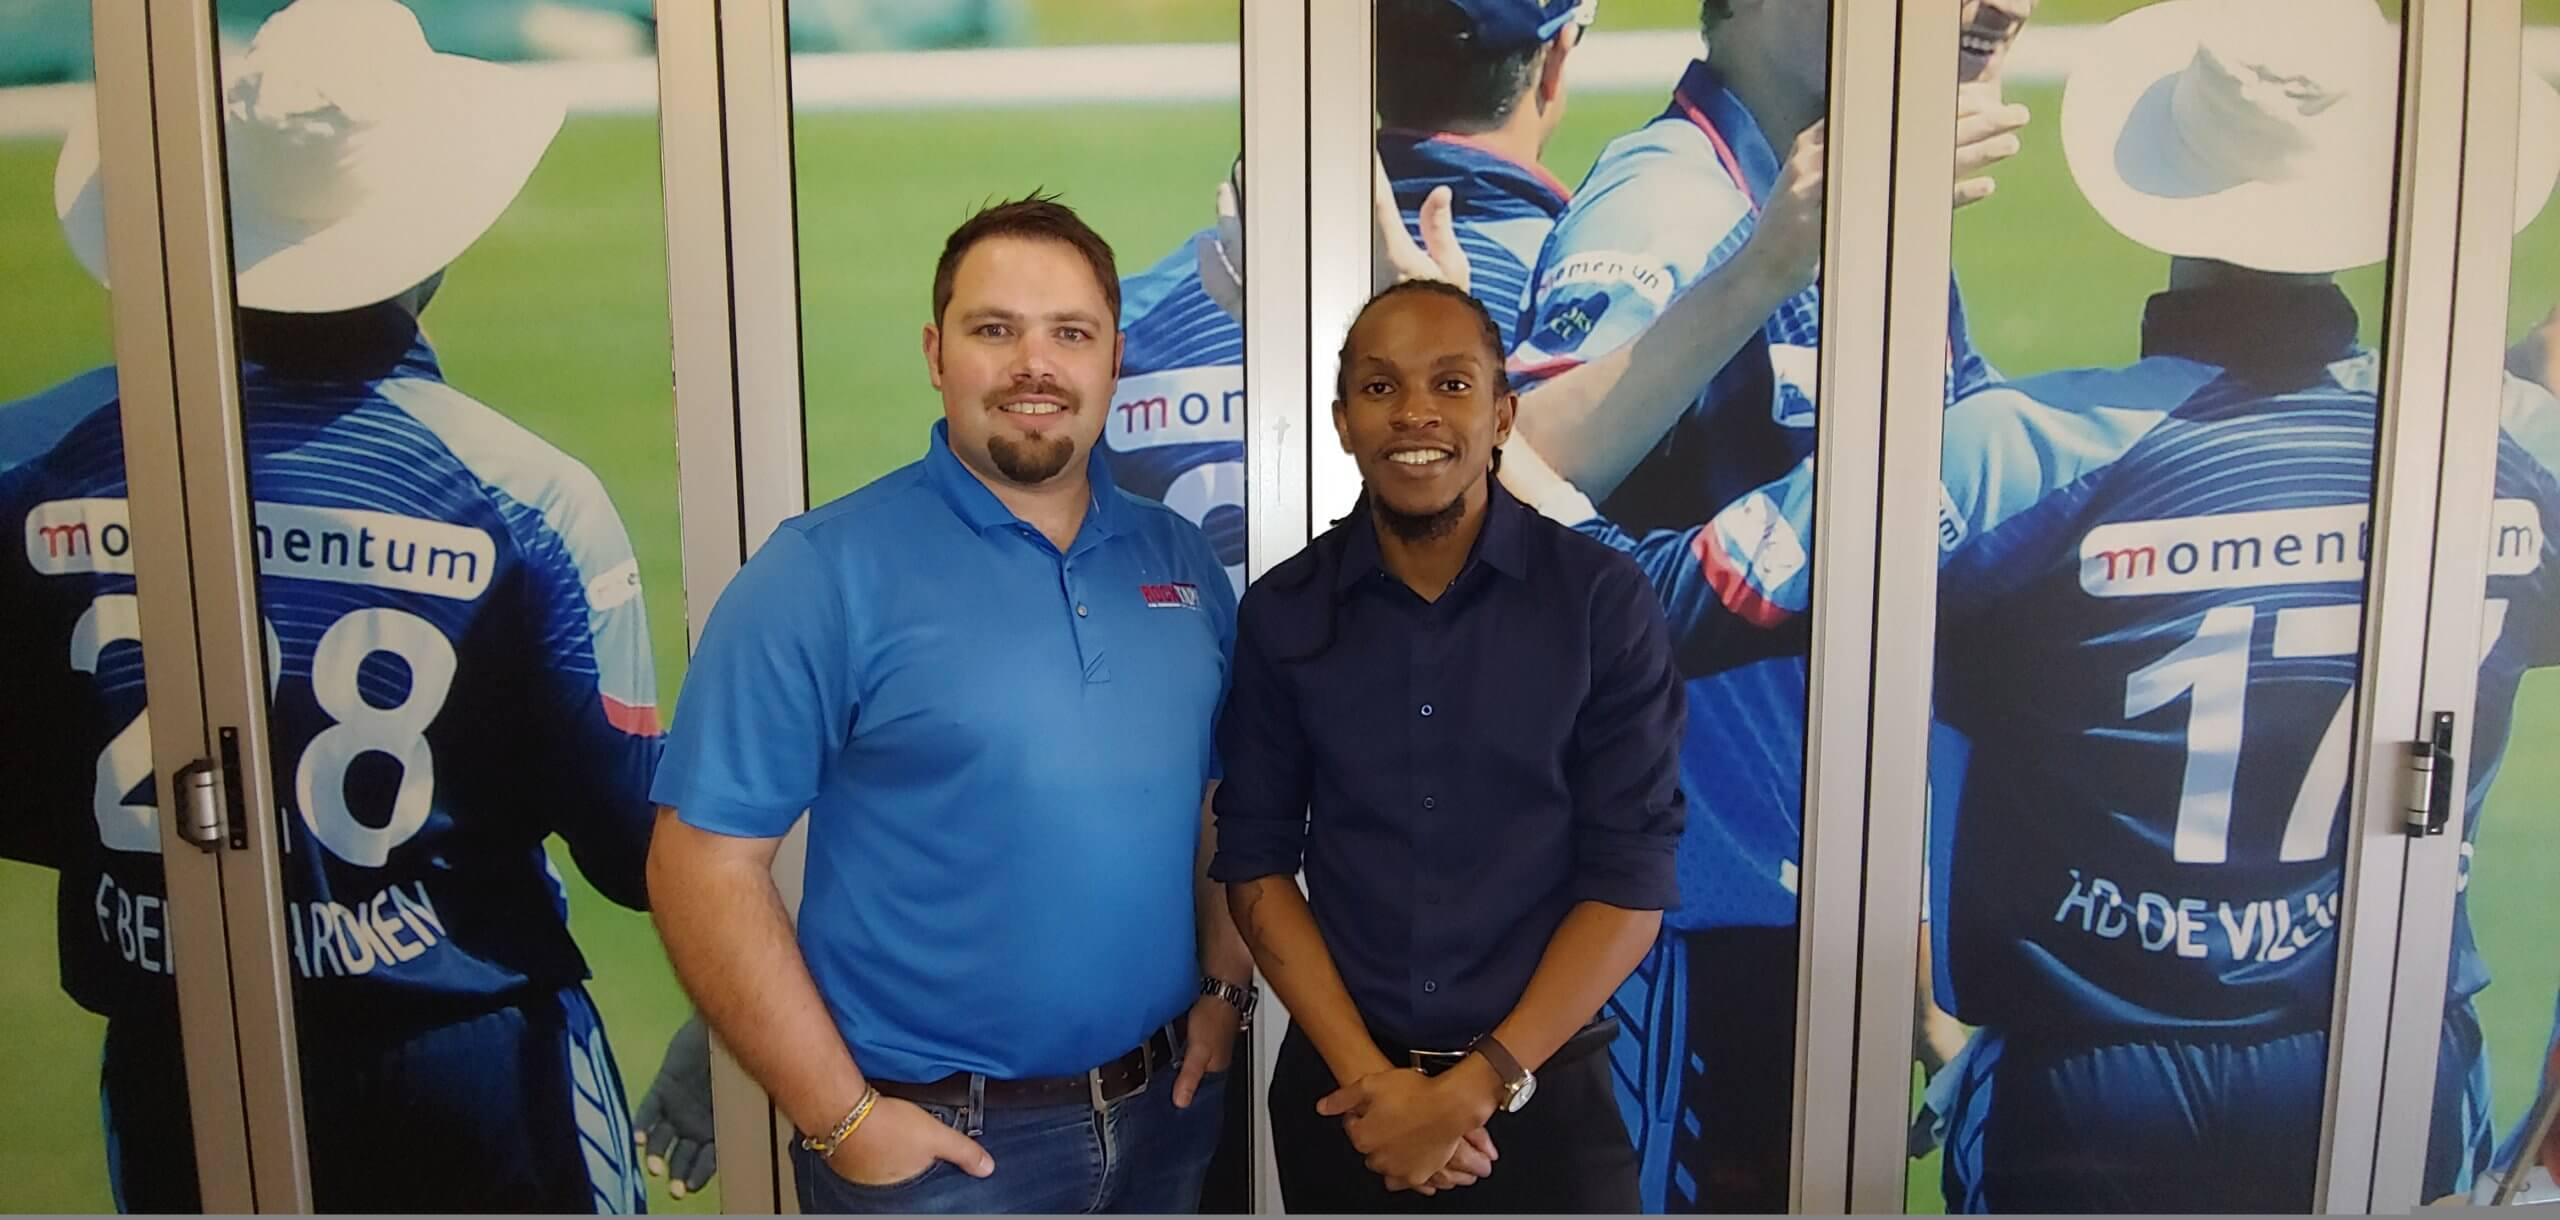 Chiropractor moving to Supersport Park – Centurion